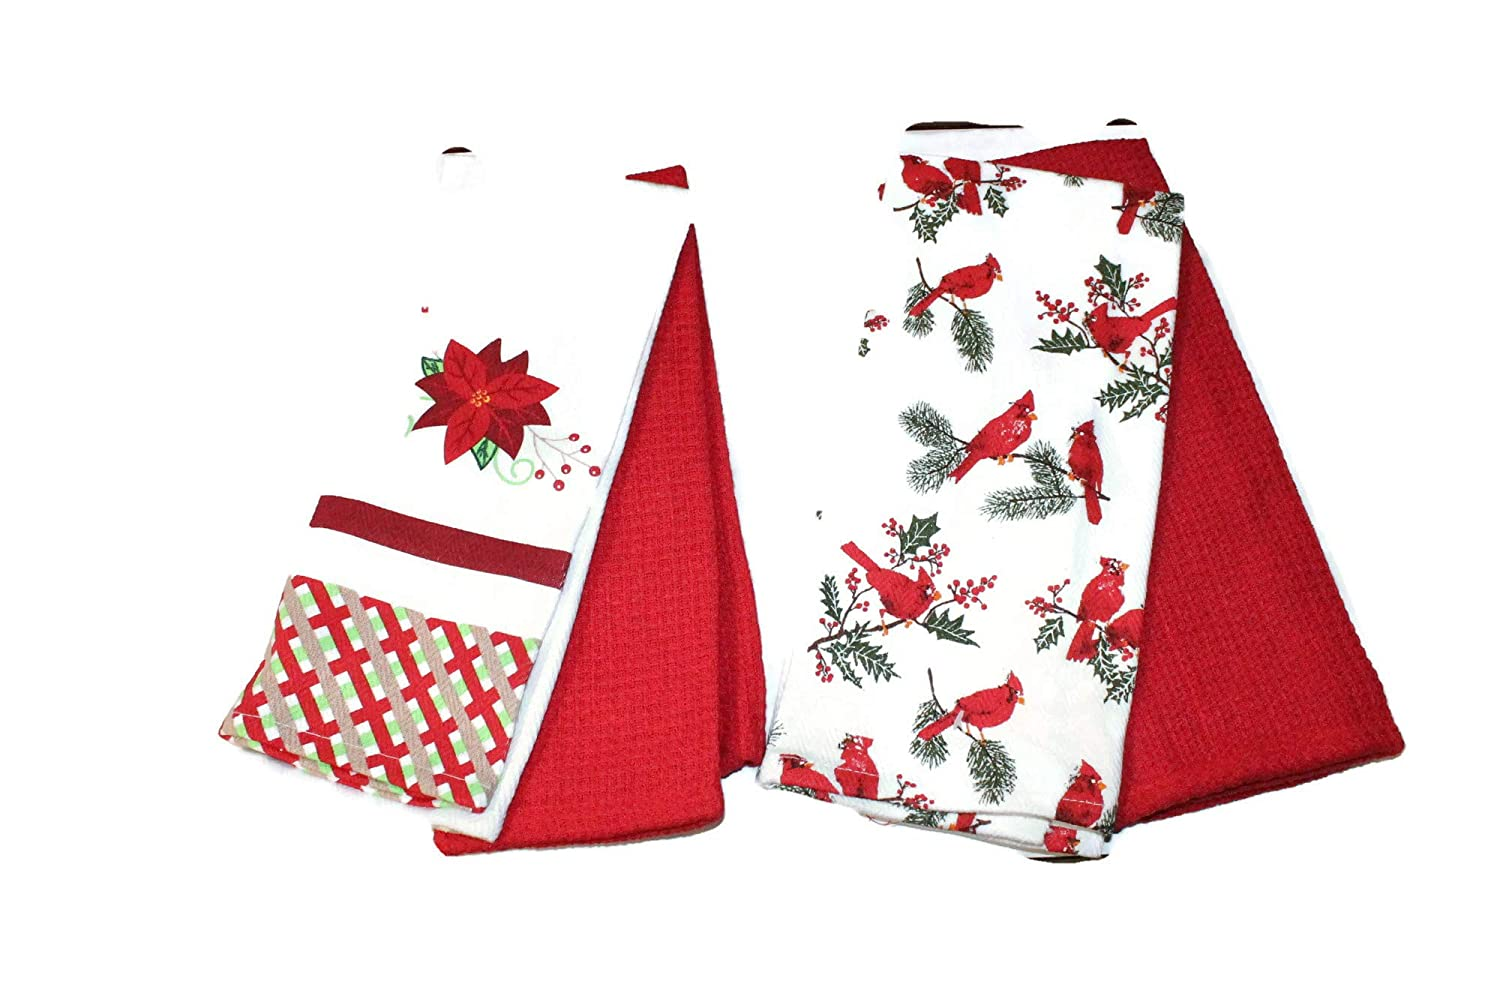 Holiday Christmas Kitchen Towels Gift Set with Poinsettia Twisted Anchor Trading Co Set of 4 Christmas Kitchen Towel Set Comes in Organza Gift Bag